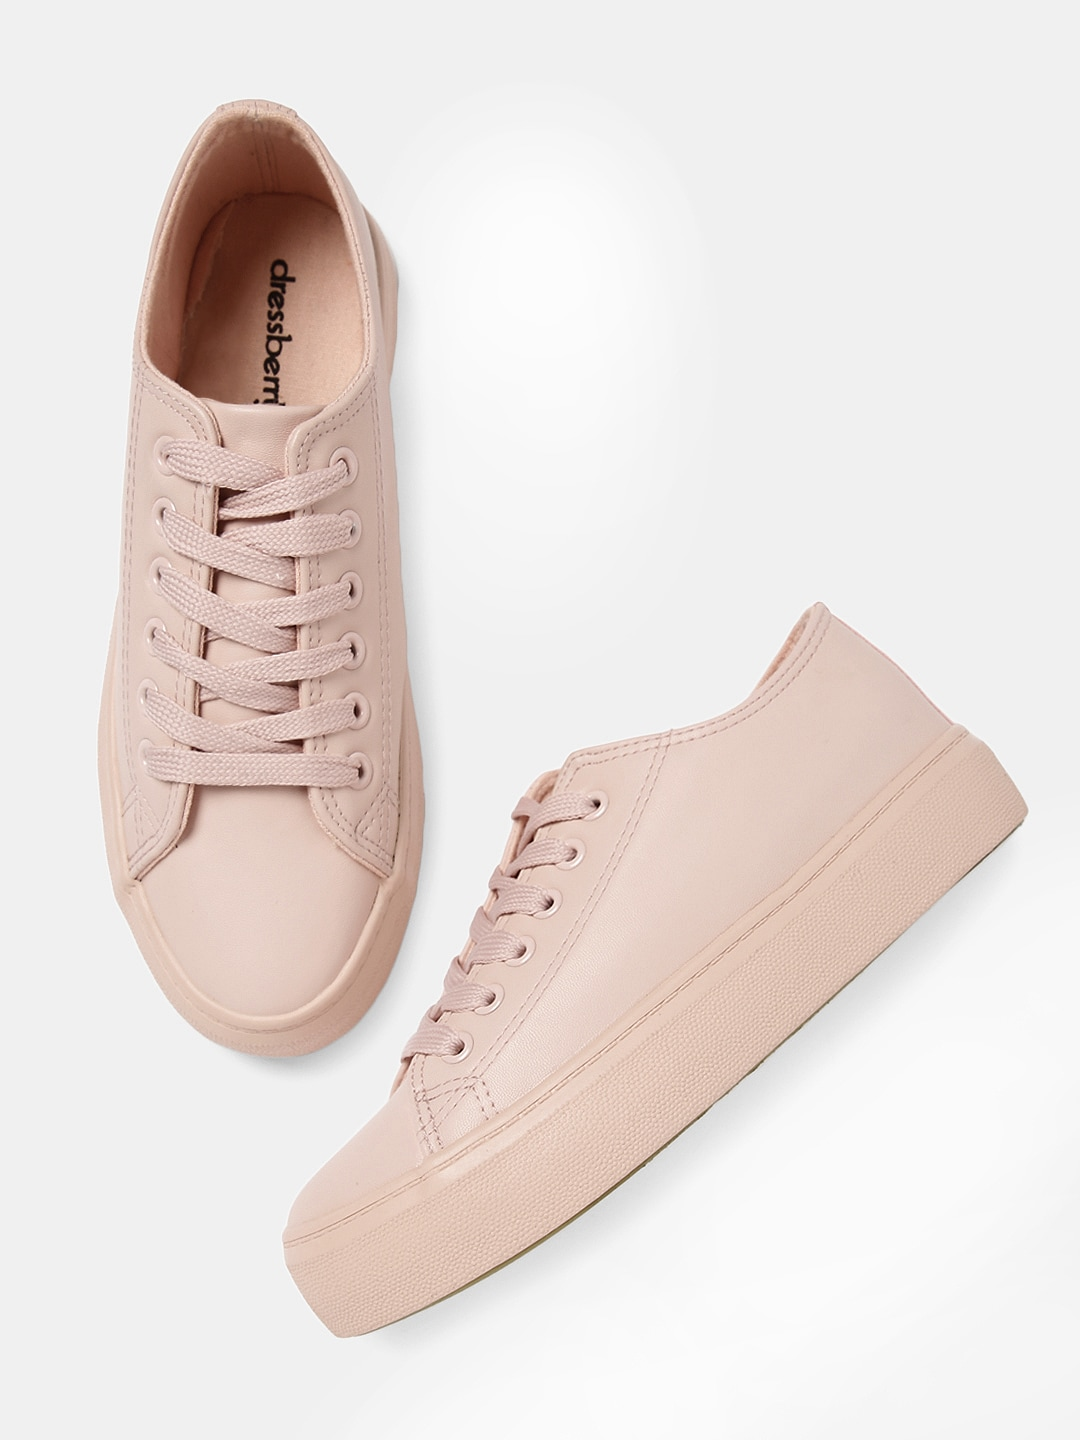 c473afd0e92 Casual Shoes For Women - Buy Women s Casual Shoes Online from Myntra